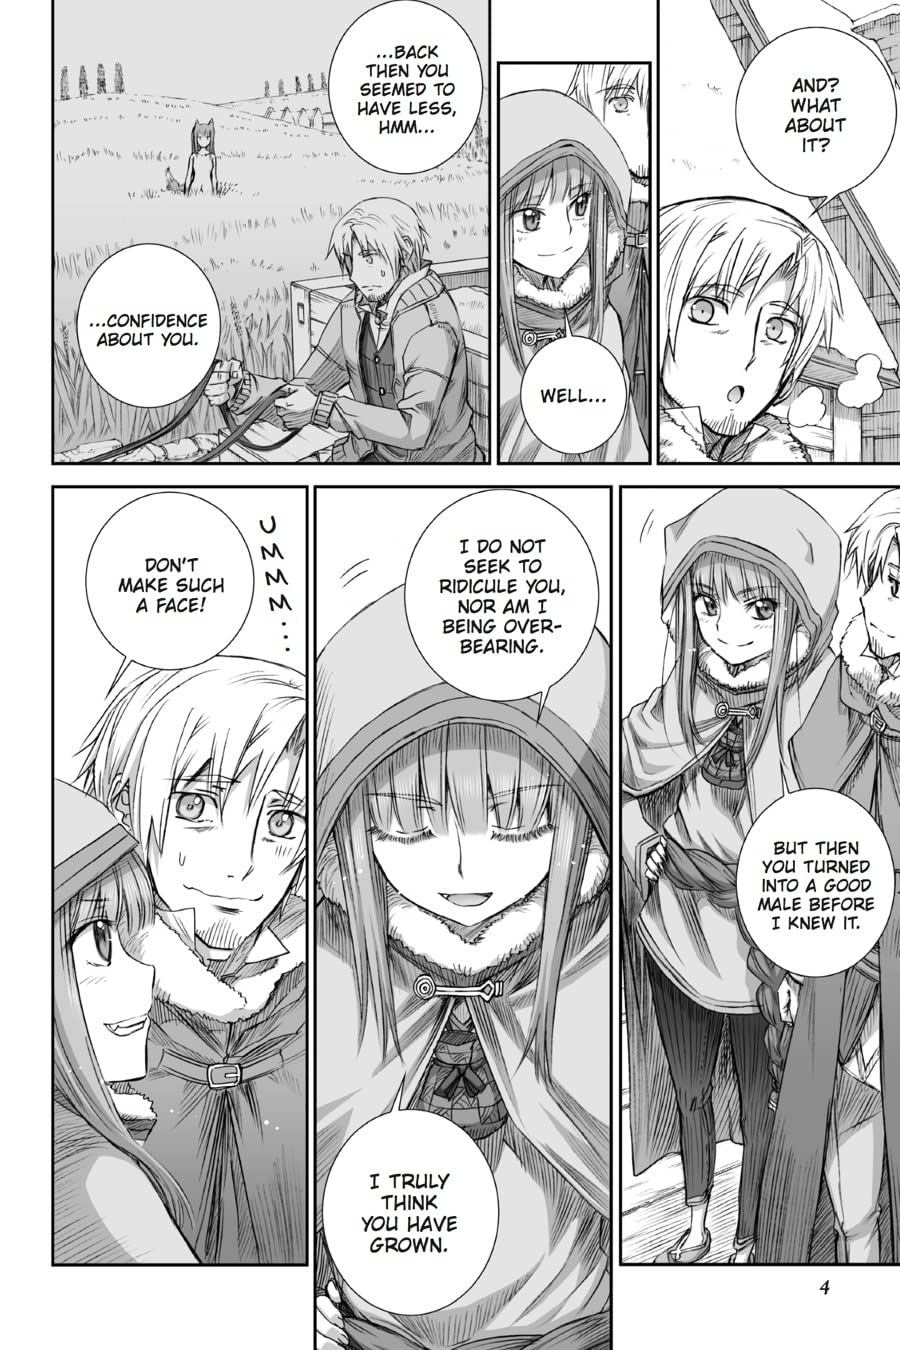 Spice and Wolf Vol. 14